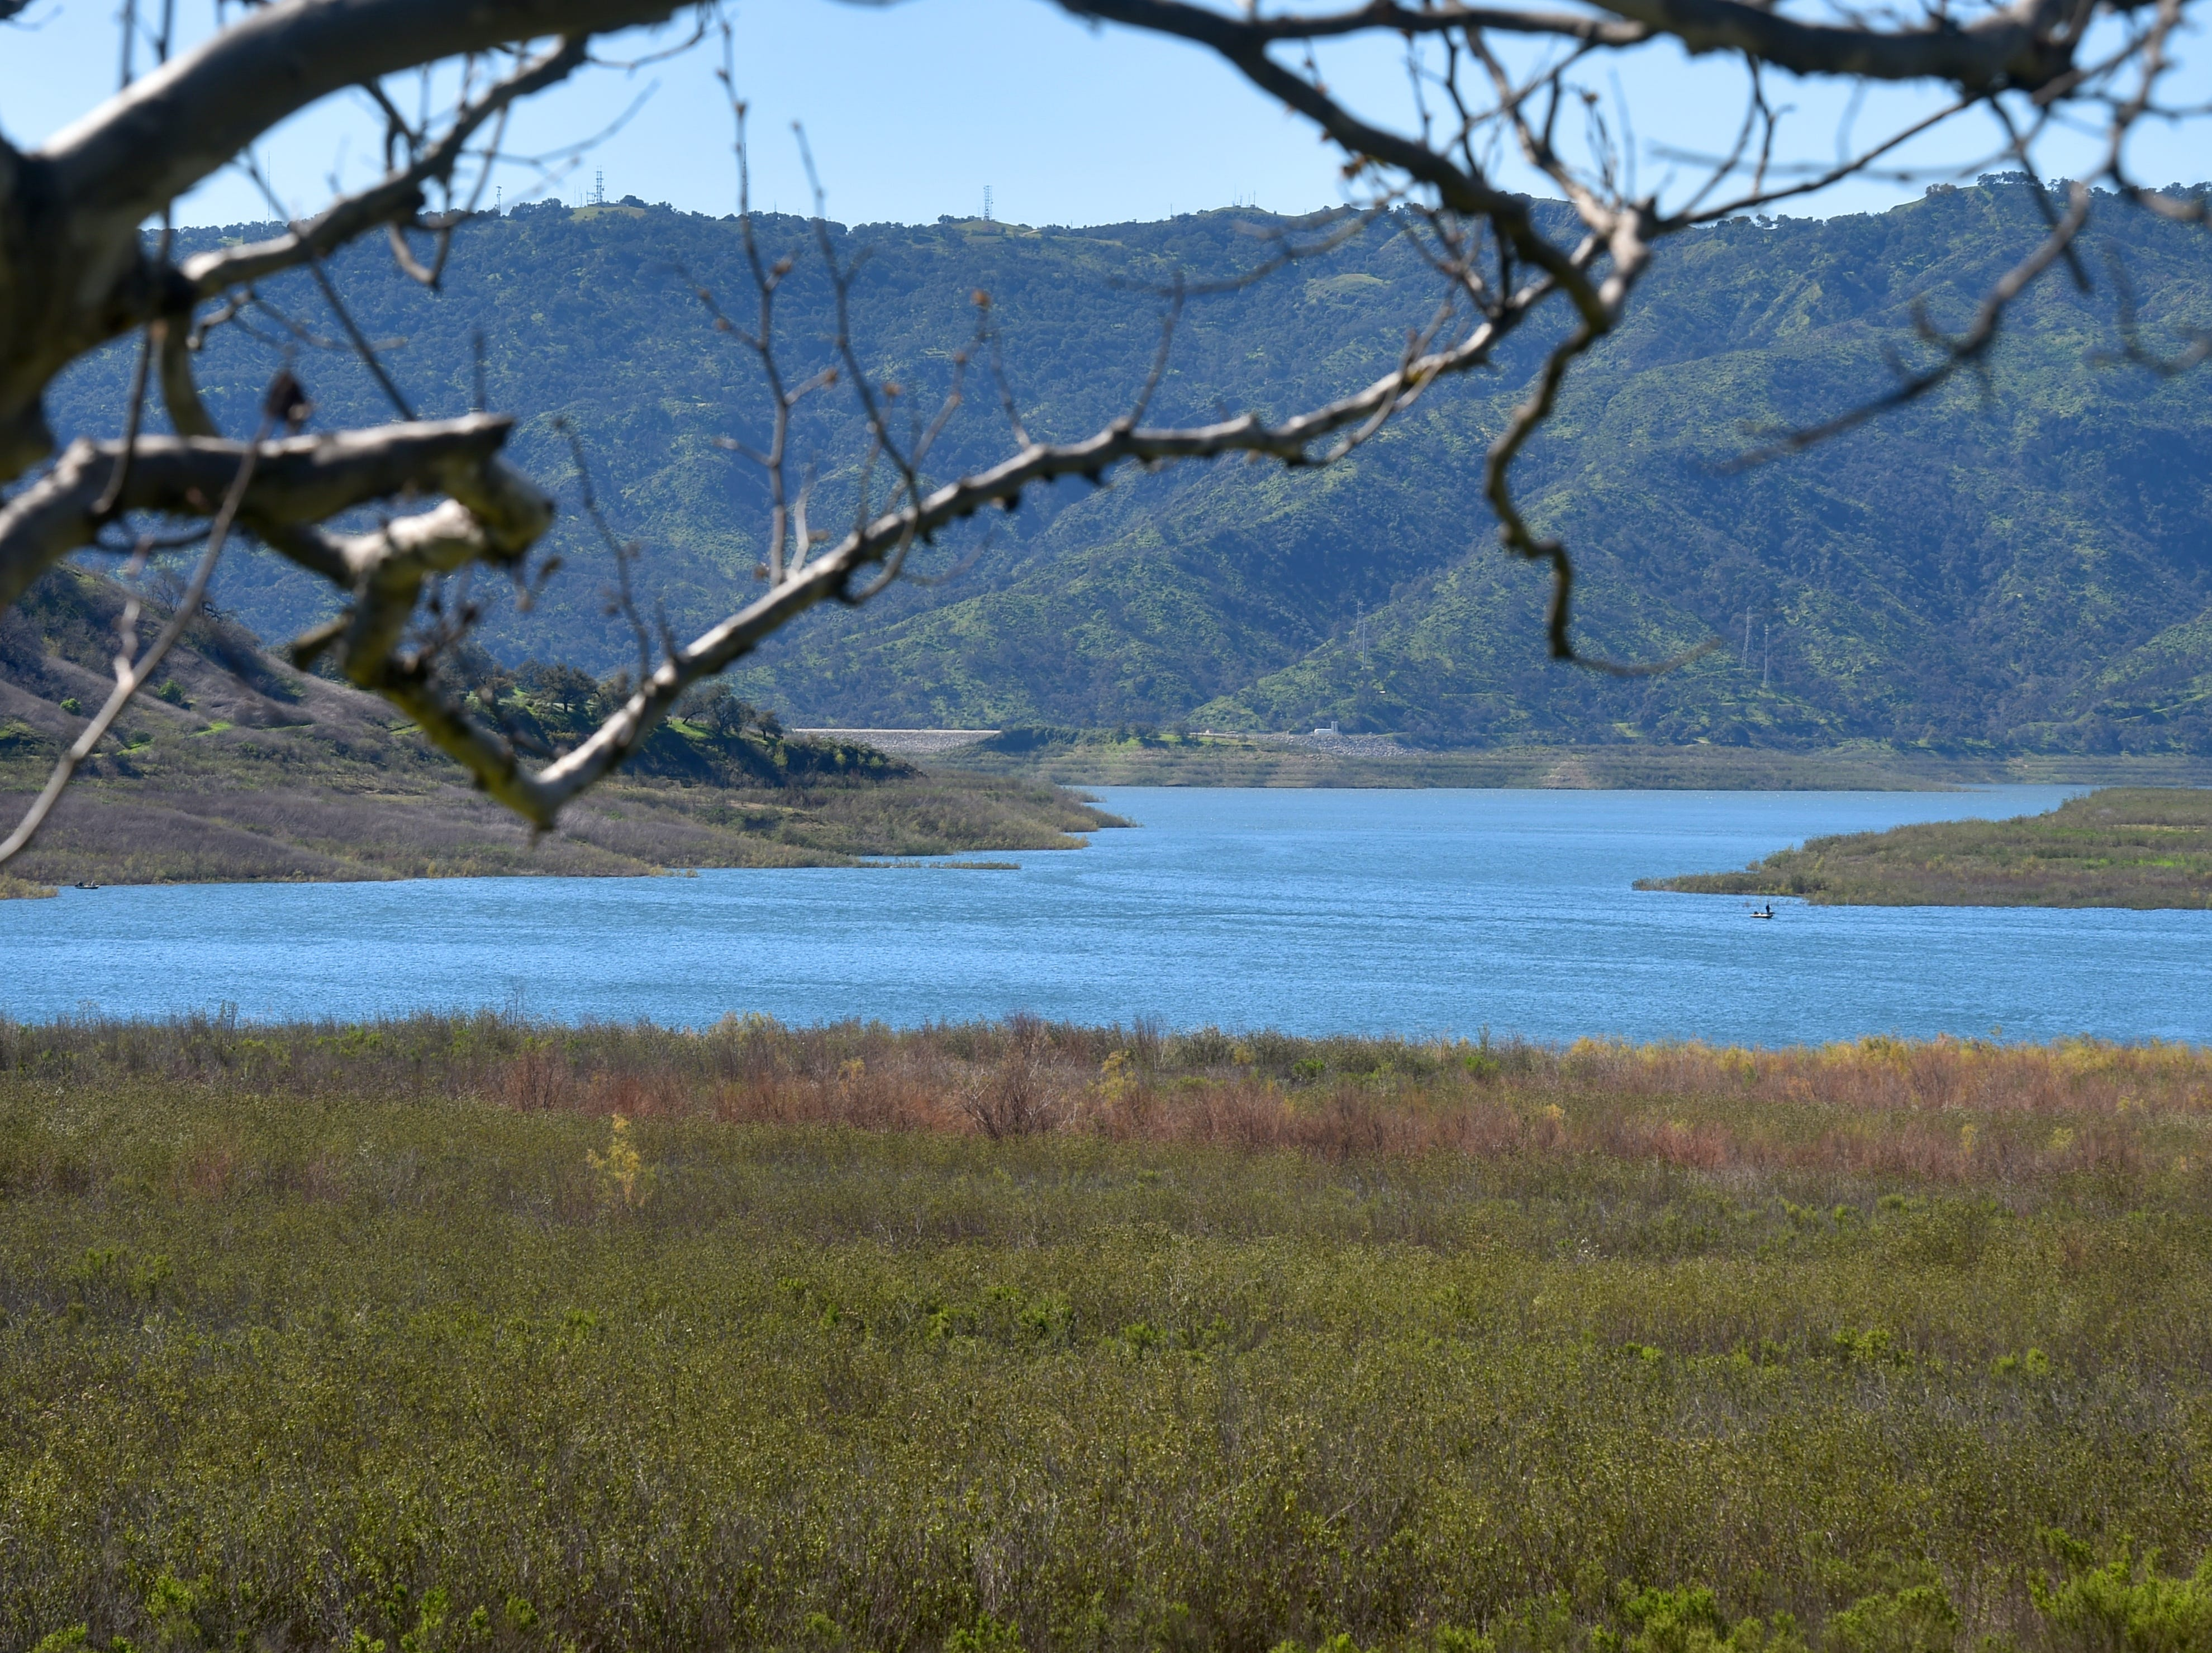 Grasses flourish throughout the Lake Casitas Recreational Area on Tuesday. The lake is at 101,687 acre-feet or about 43 percent of its capacity.